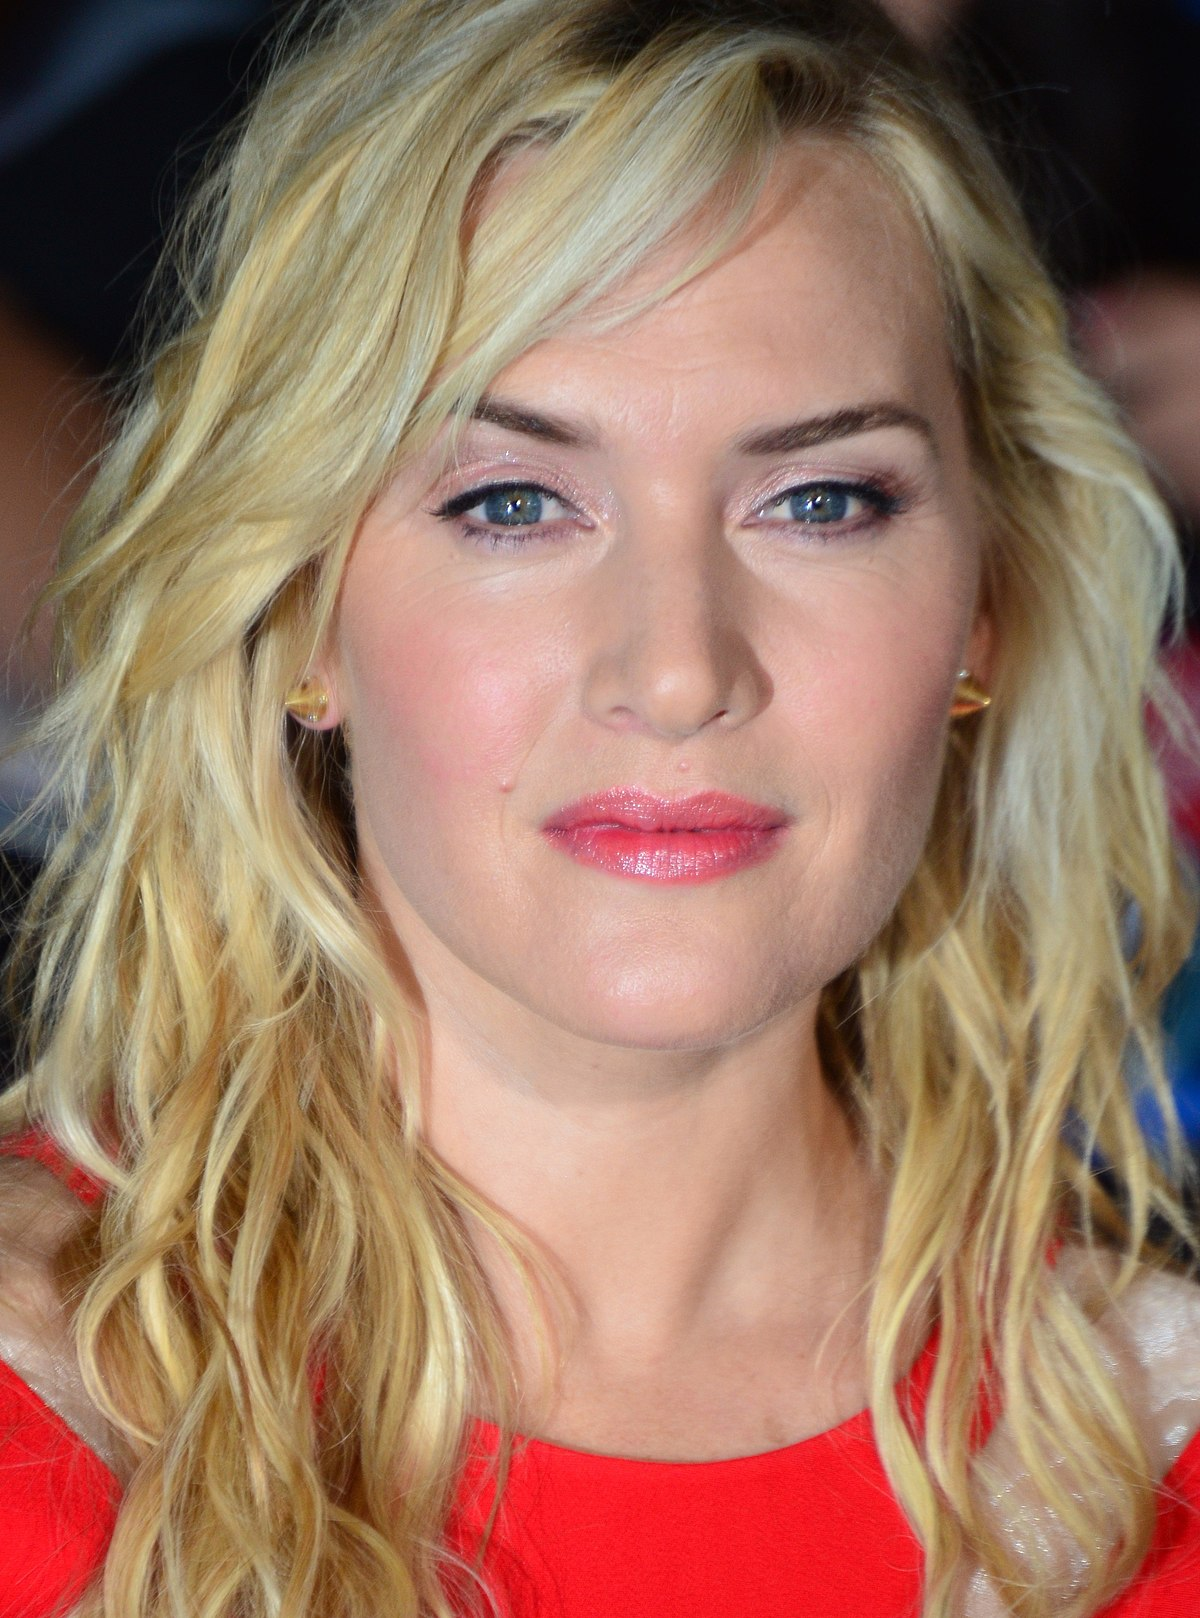 Kate Winslet - Wikipedia Kate Winslet